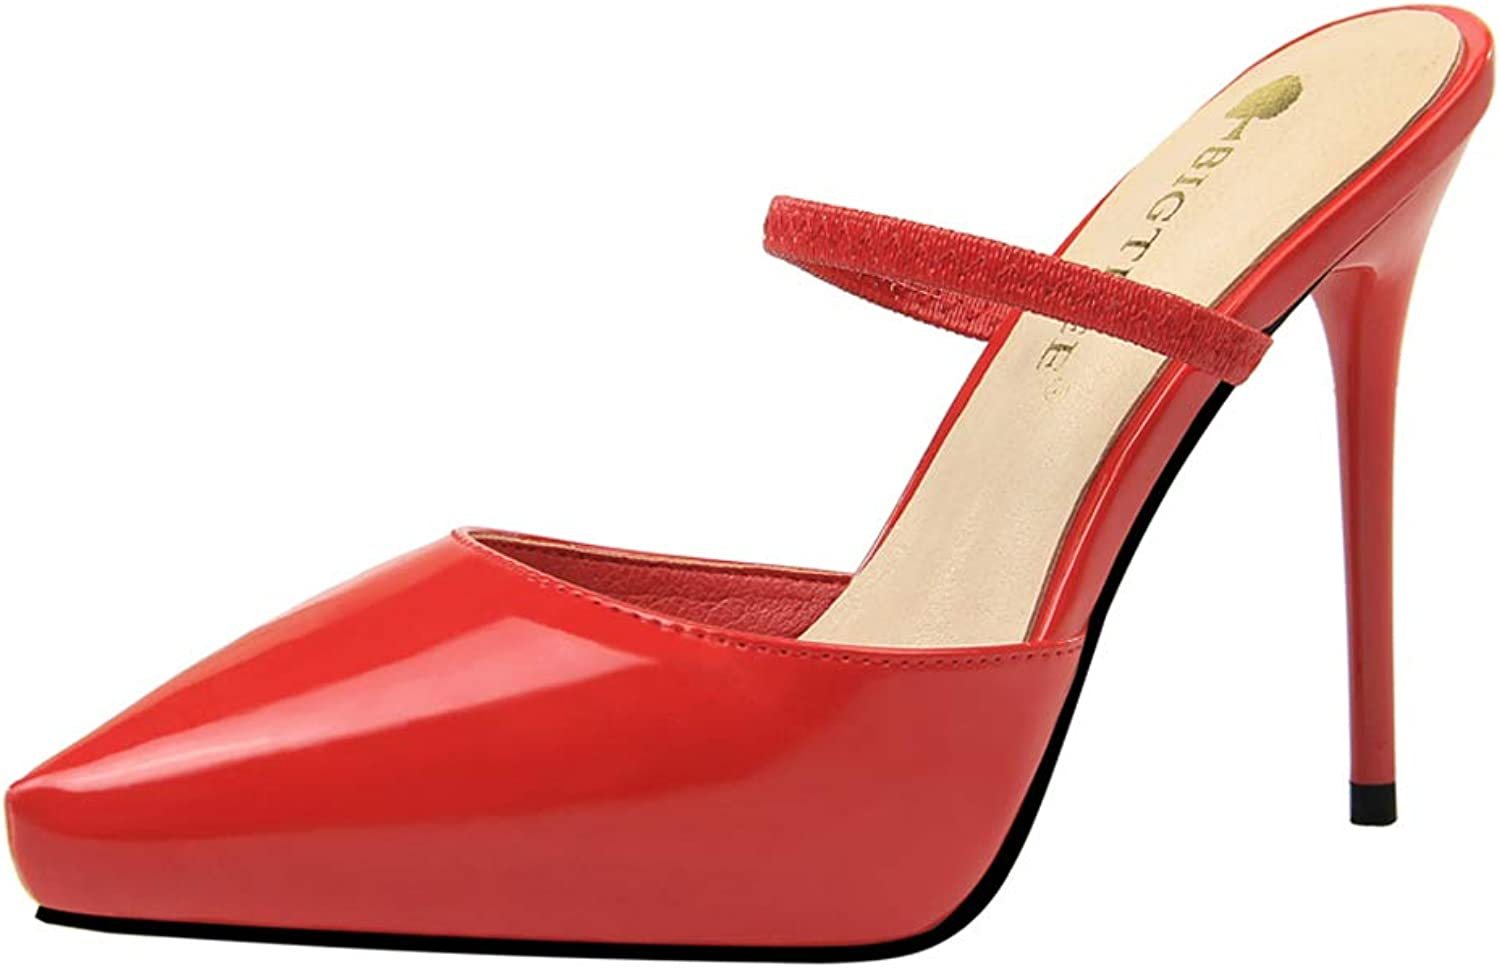 Sandals European Style Simple Stiletto Women's shoes Super high Heel Pointed Waterproof Platform Sandals and Slippers,G,36